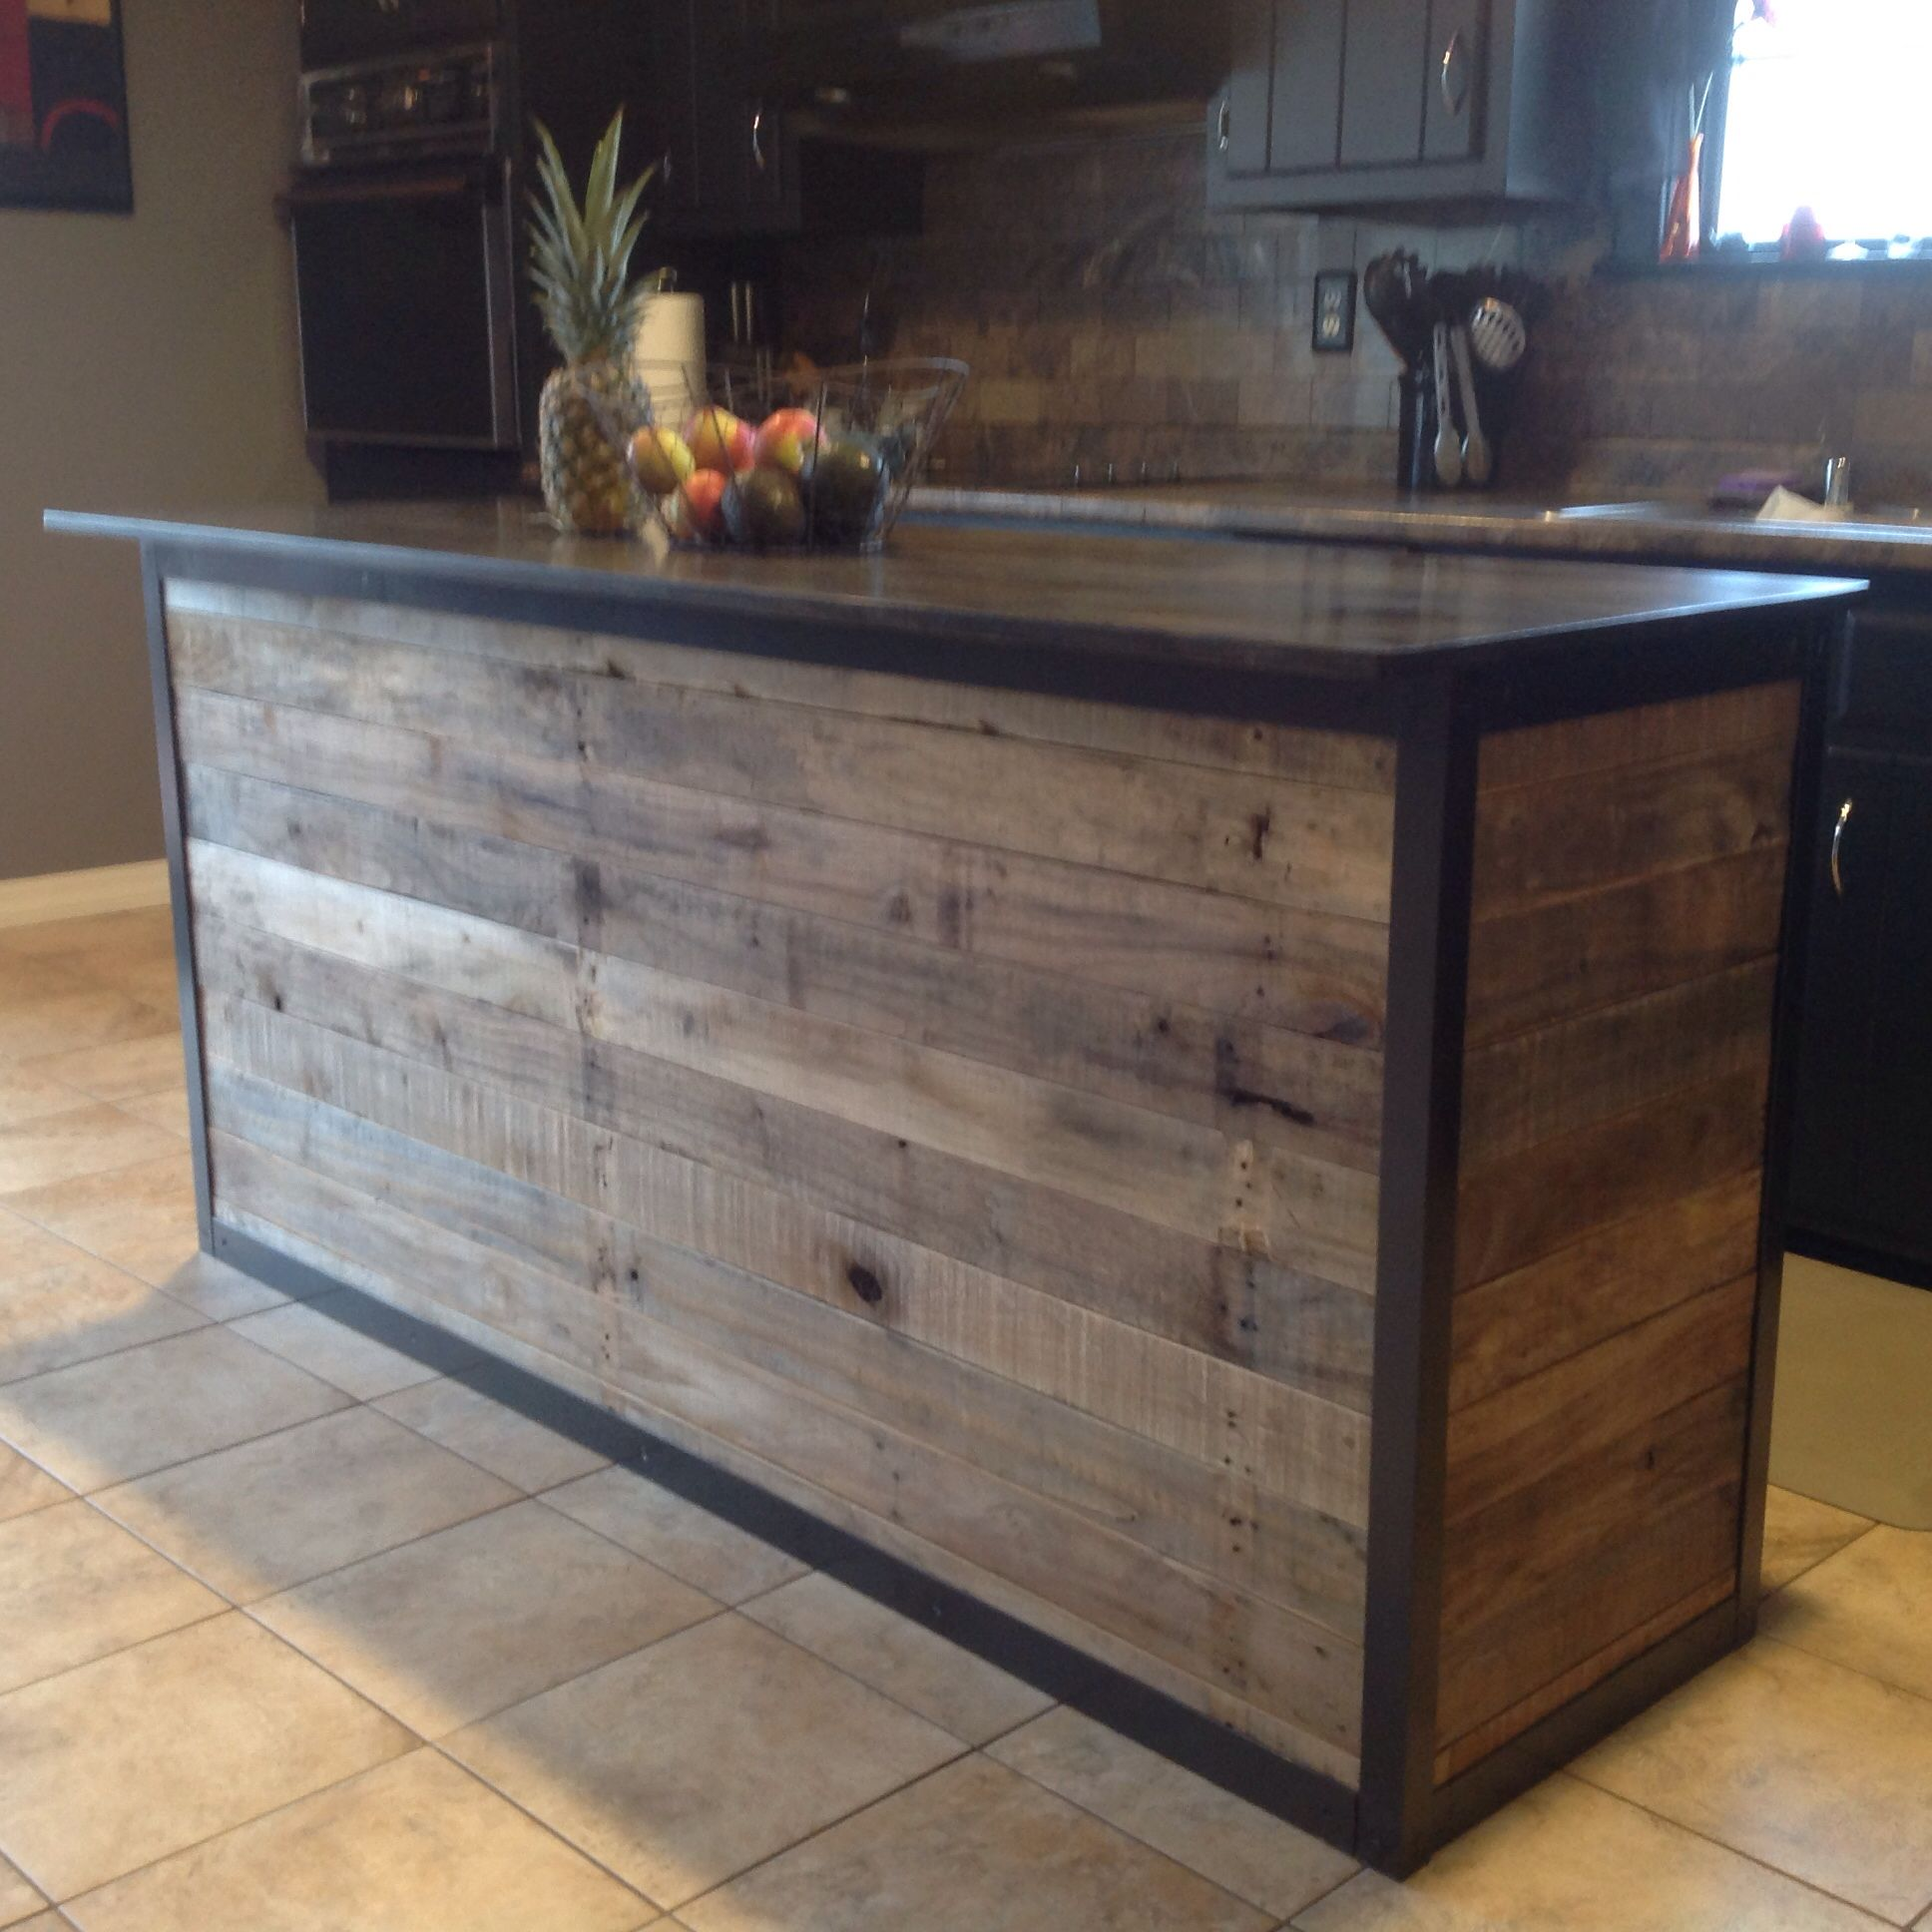 Diy kitchen island made from pallet wood | For the Home | Pinterest ...